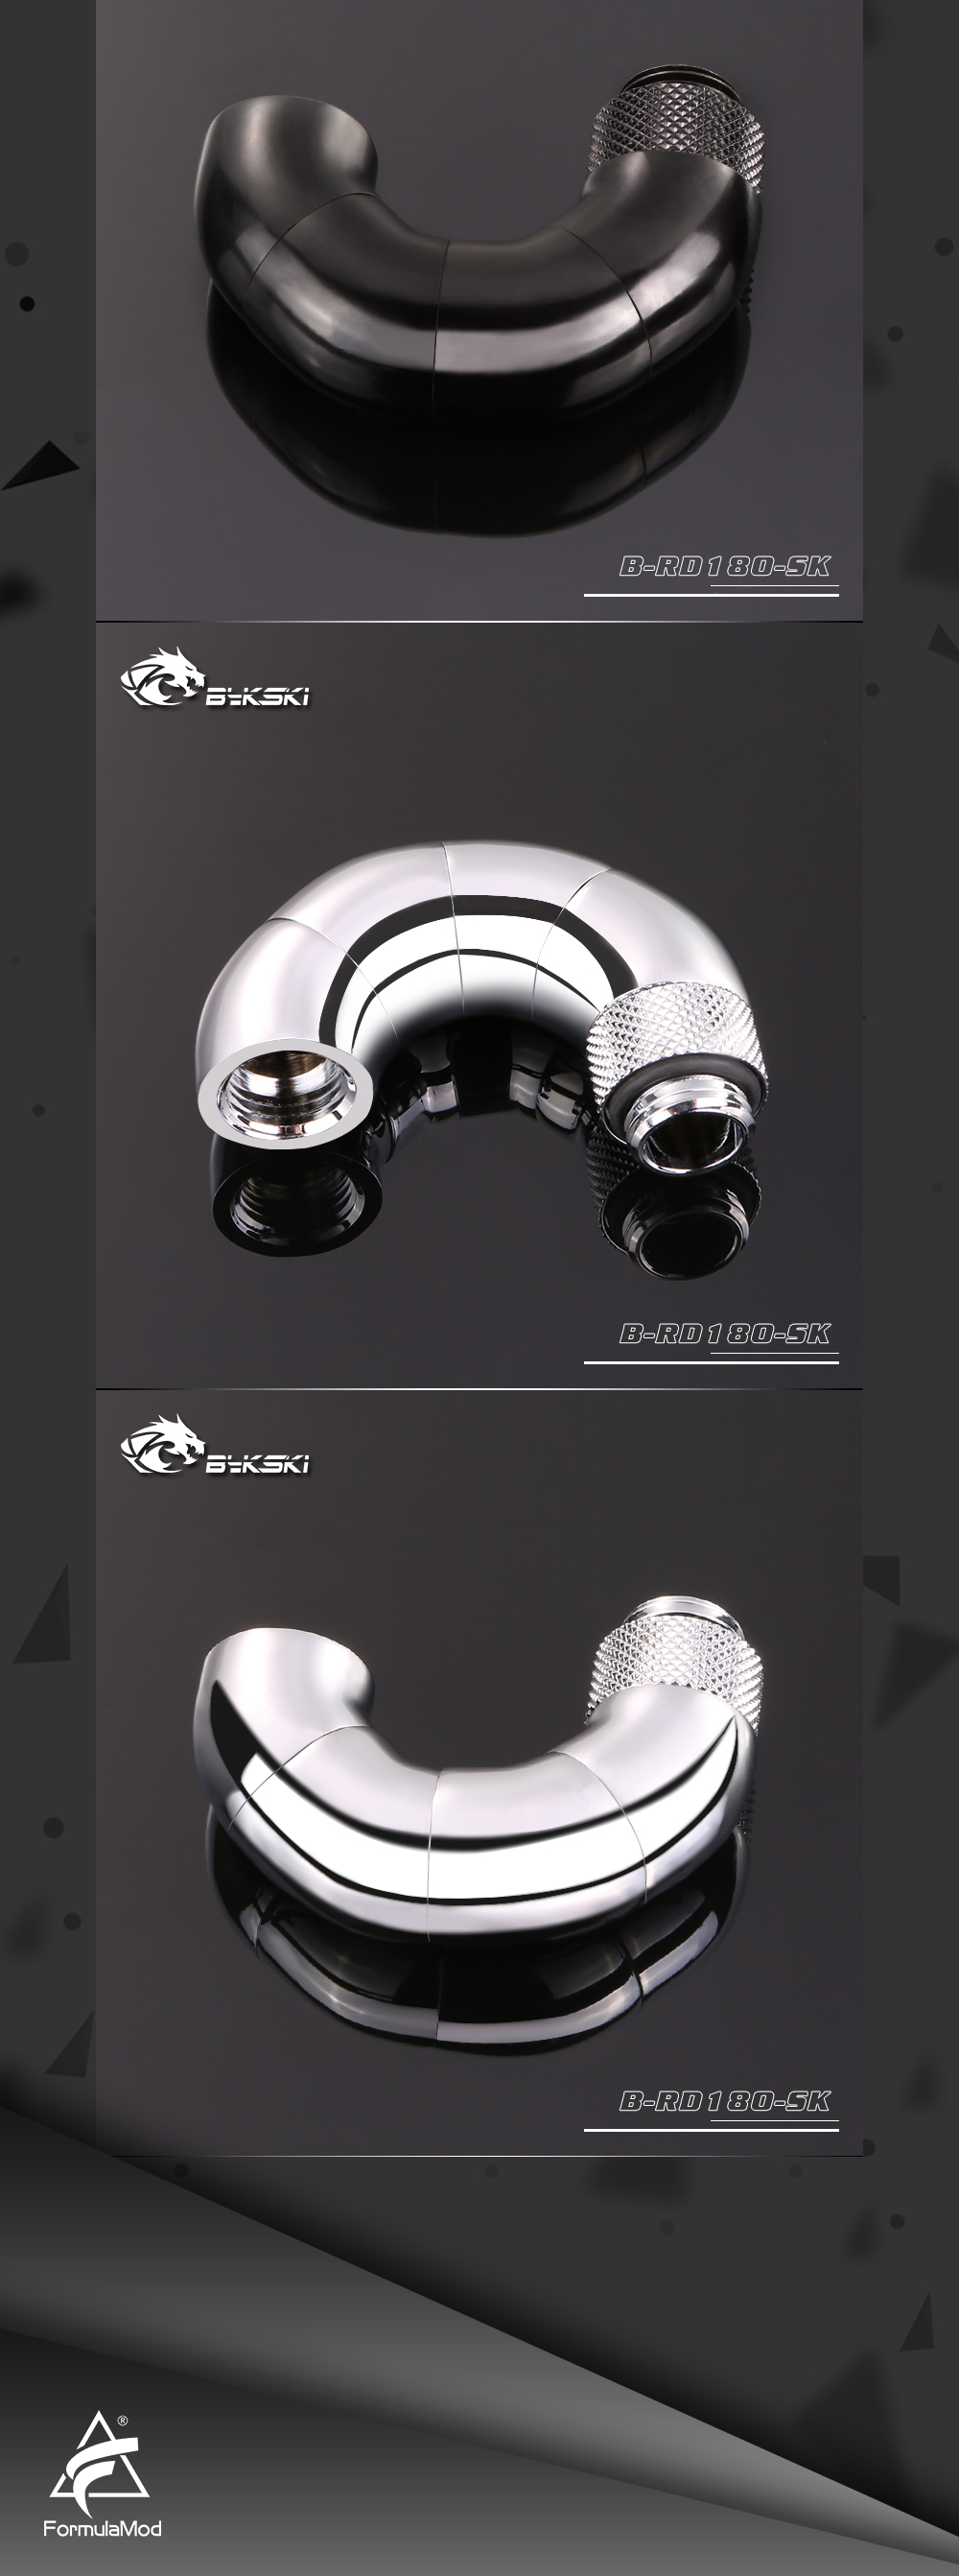 Bykski B-RD180-SK, 180 Degree Zigzag Rotatable Fittings, Four-stage Male To Female Rotatable Fittings